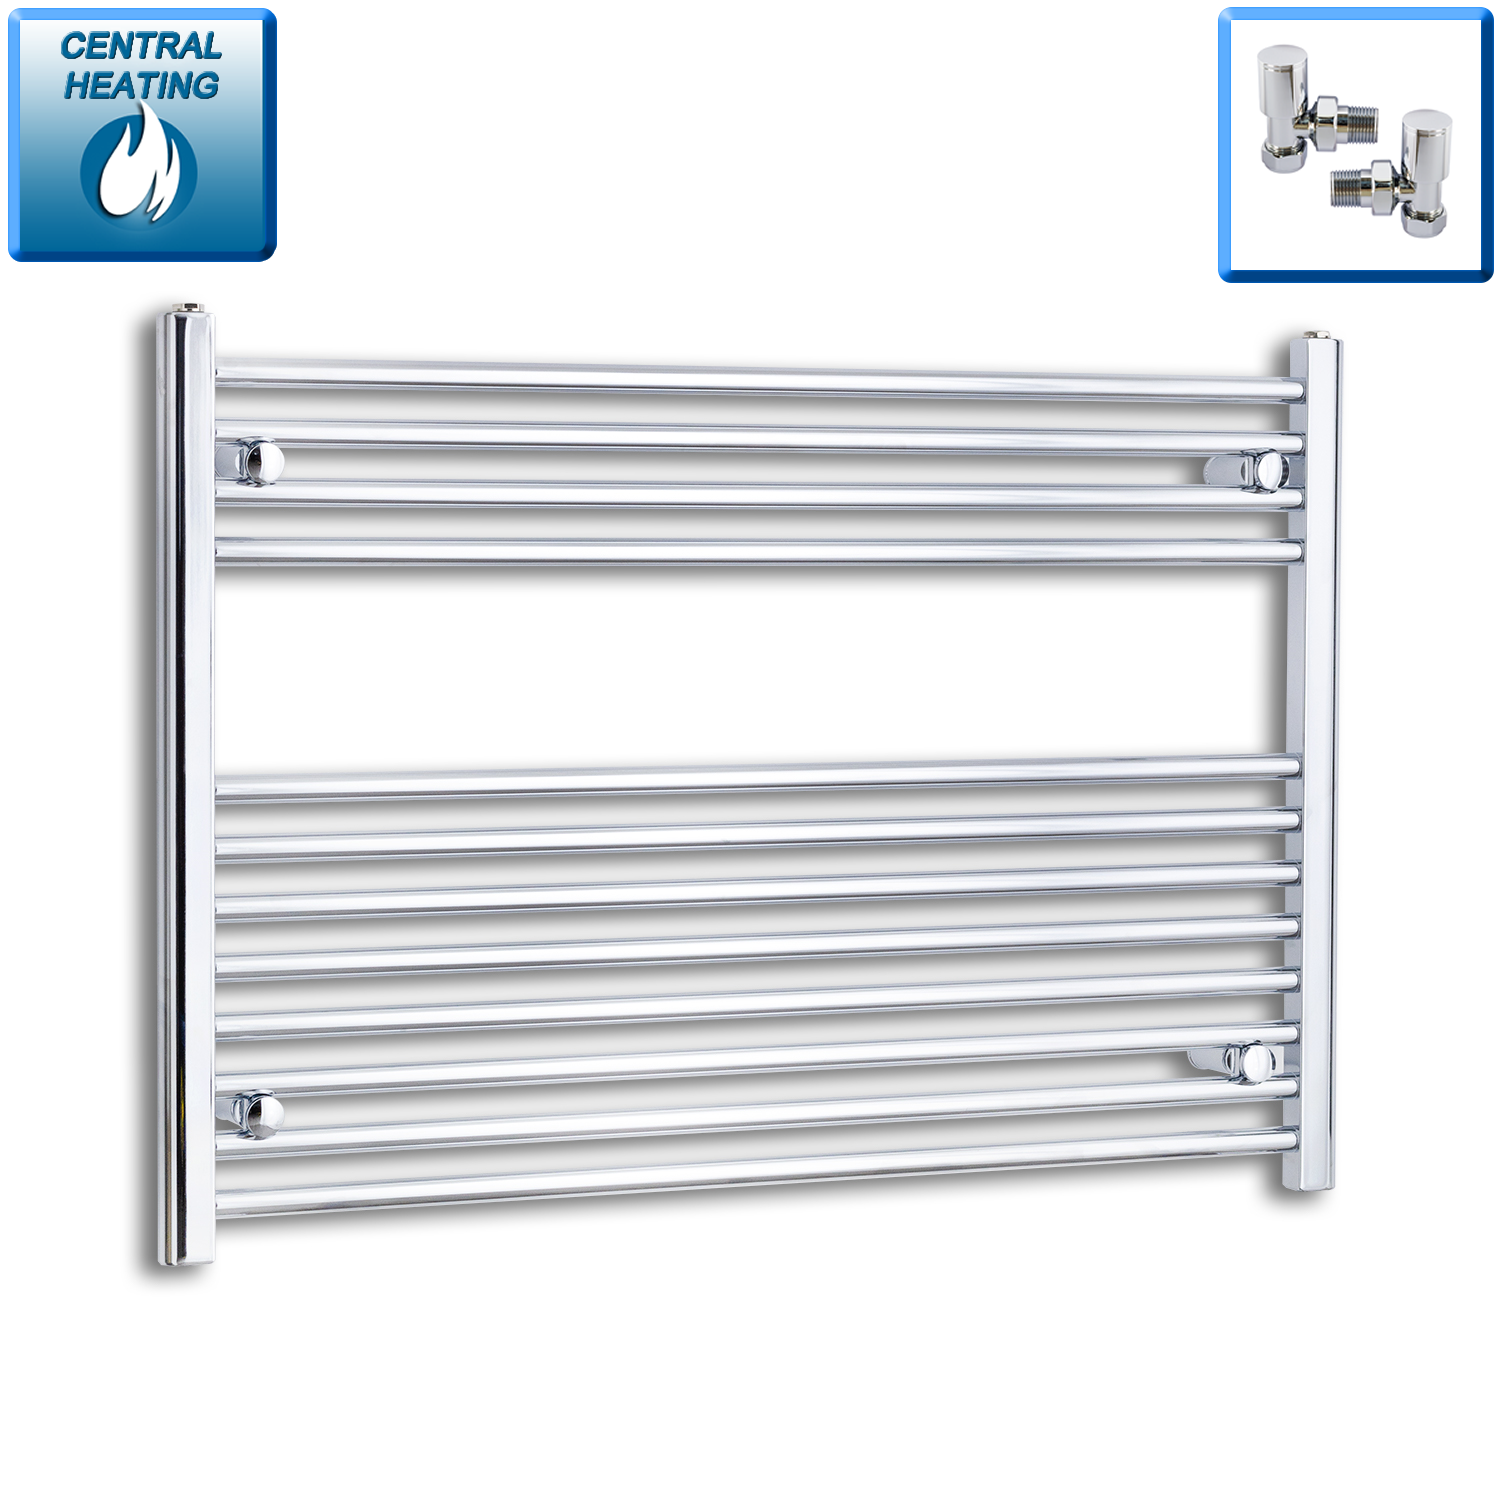 1000mm Wide 700mm High Flat Chrome Heated Towel Rail Radiator HTR,With Angled Valve